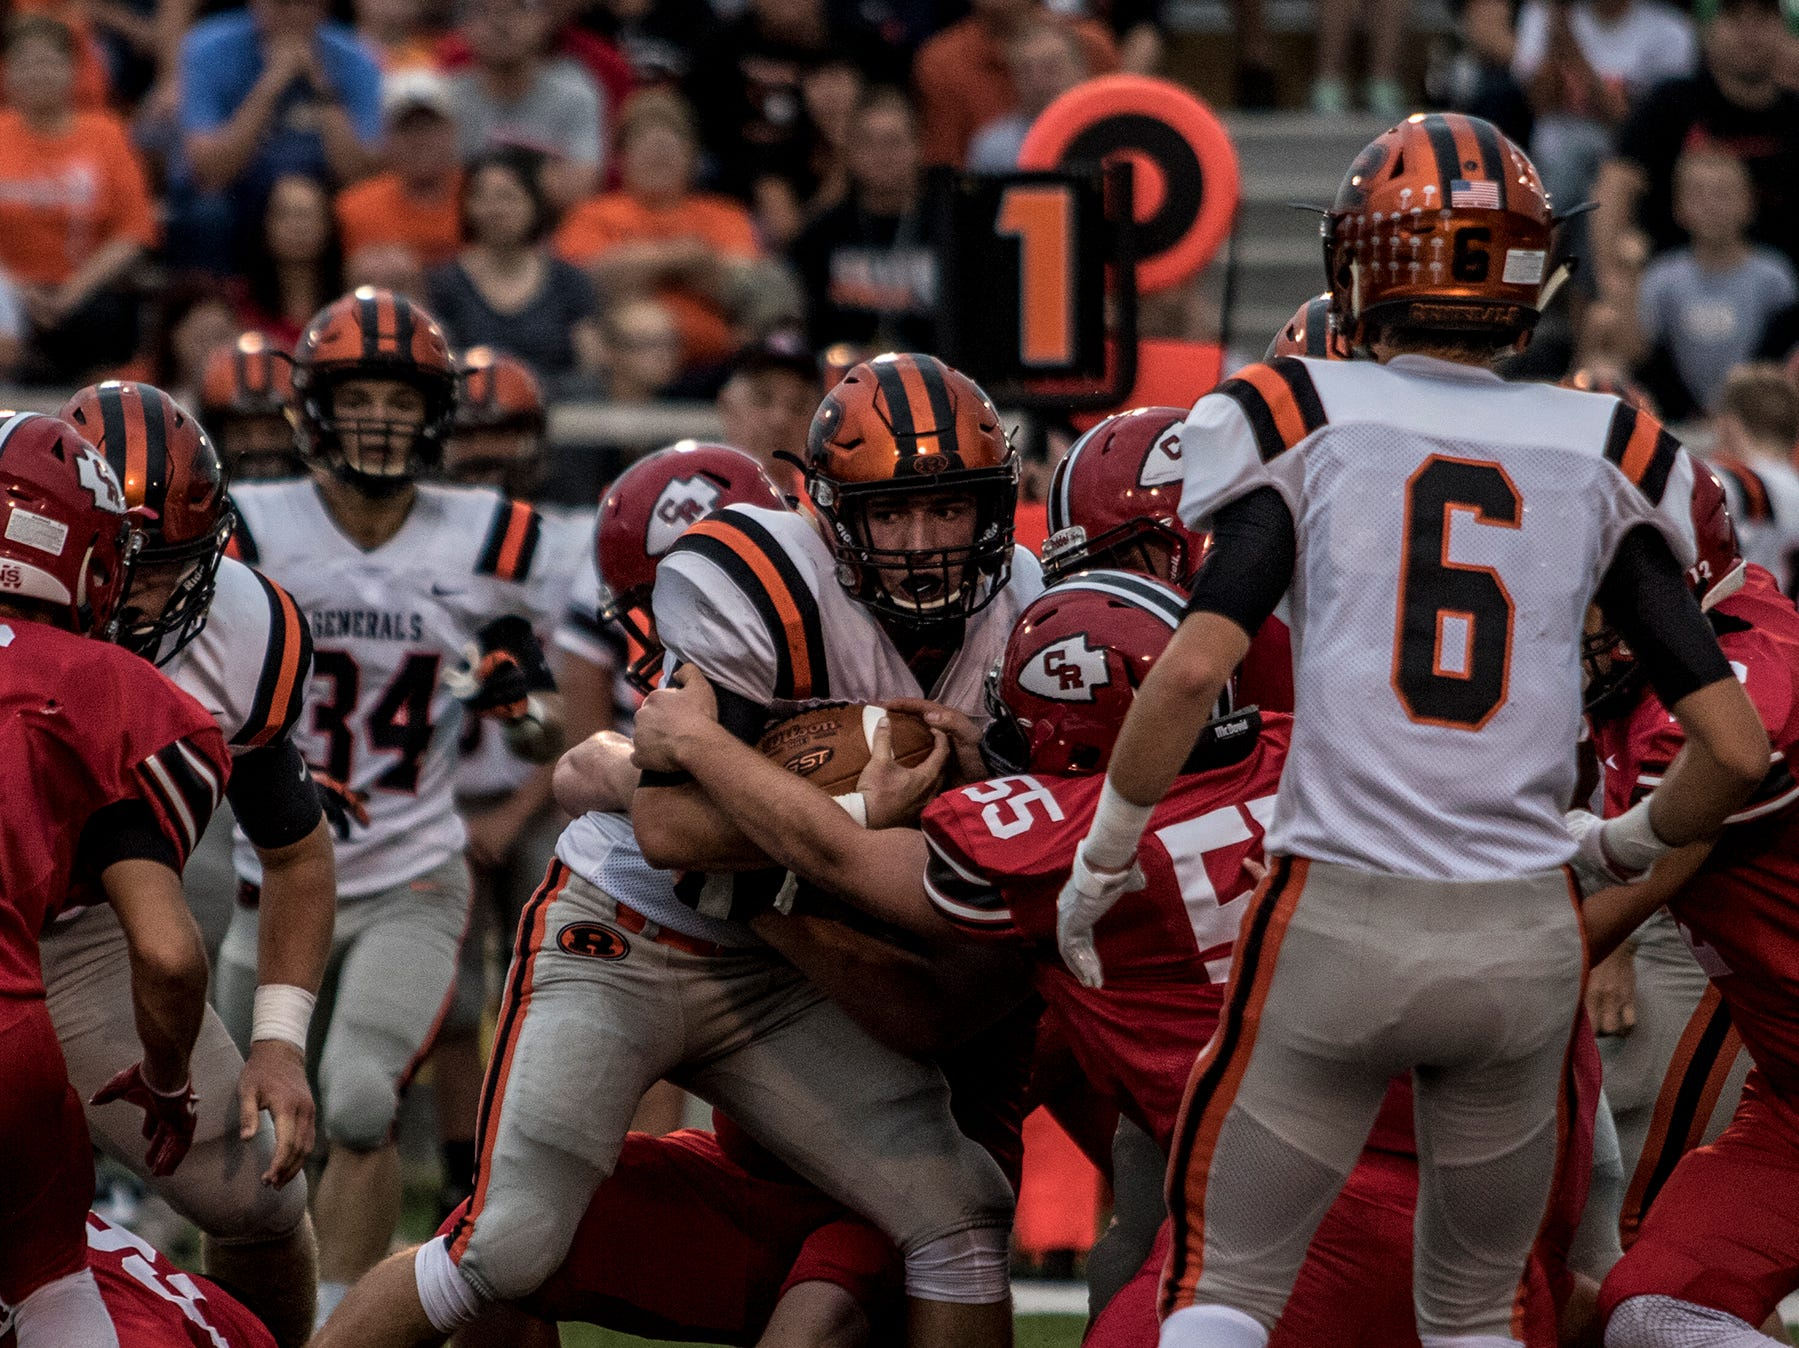 Coshocton hosted Ridgewood Friday night, but the Redskins could not hold off the Generals, who took the win 34-20.